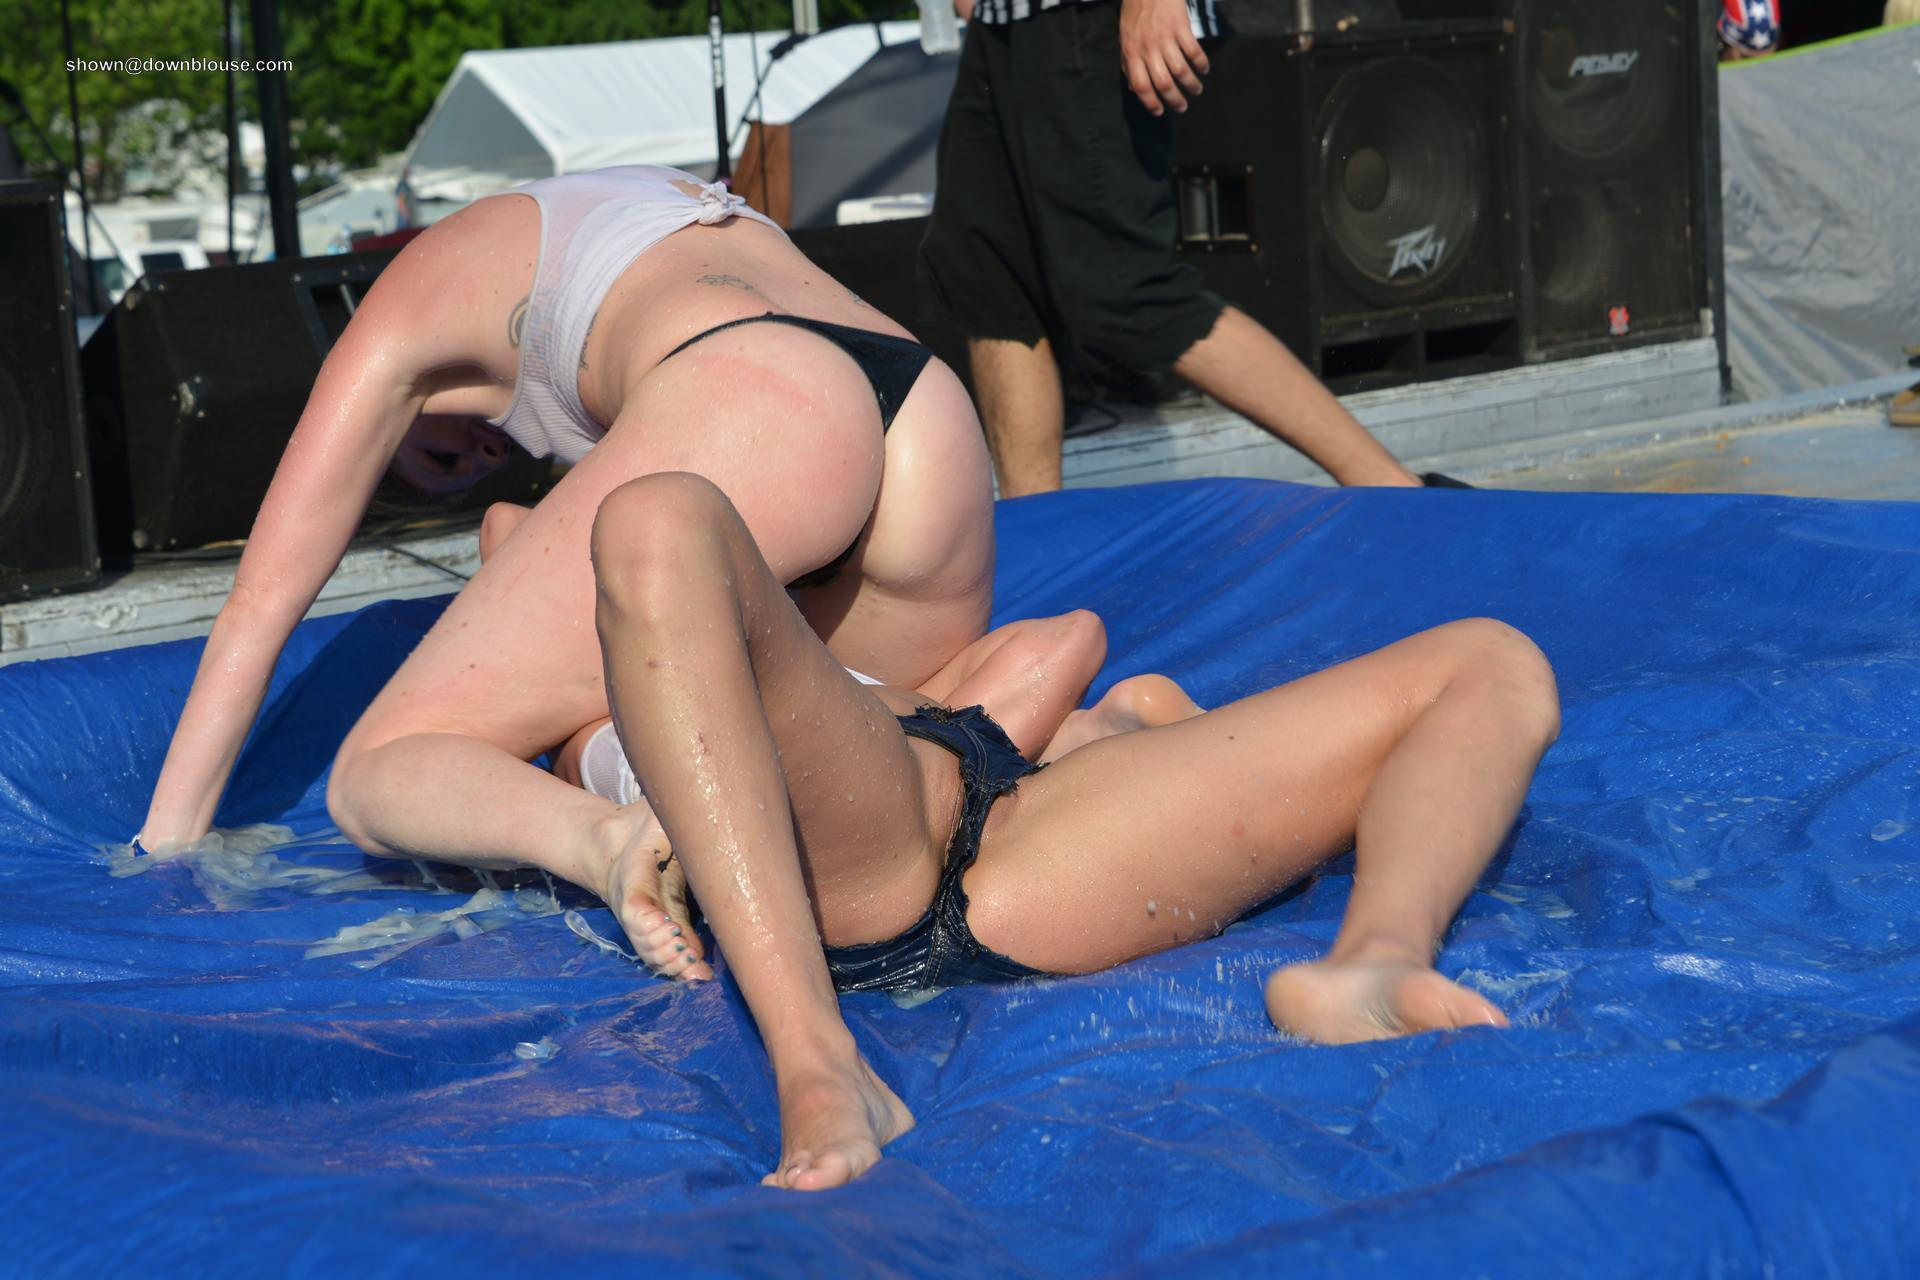 Fight girls and pussy slips from our OFF TOPIC AREA More than 10.000 photos in our downblouse database